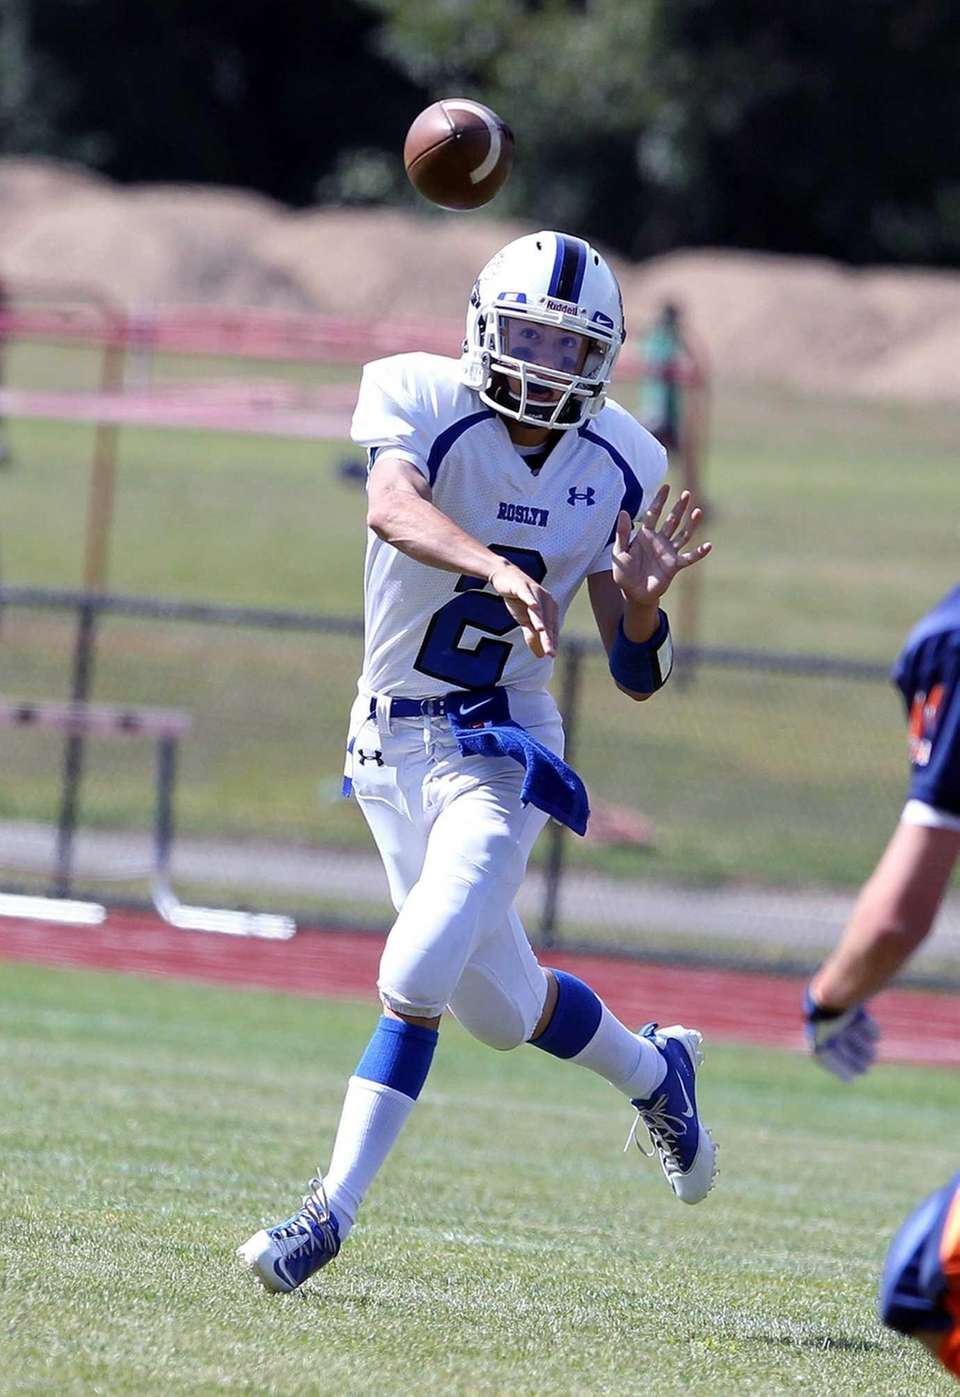 Roslyn's QB Adam Combs throws a short pass